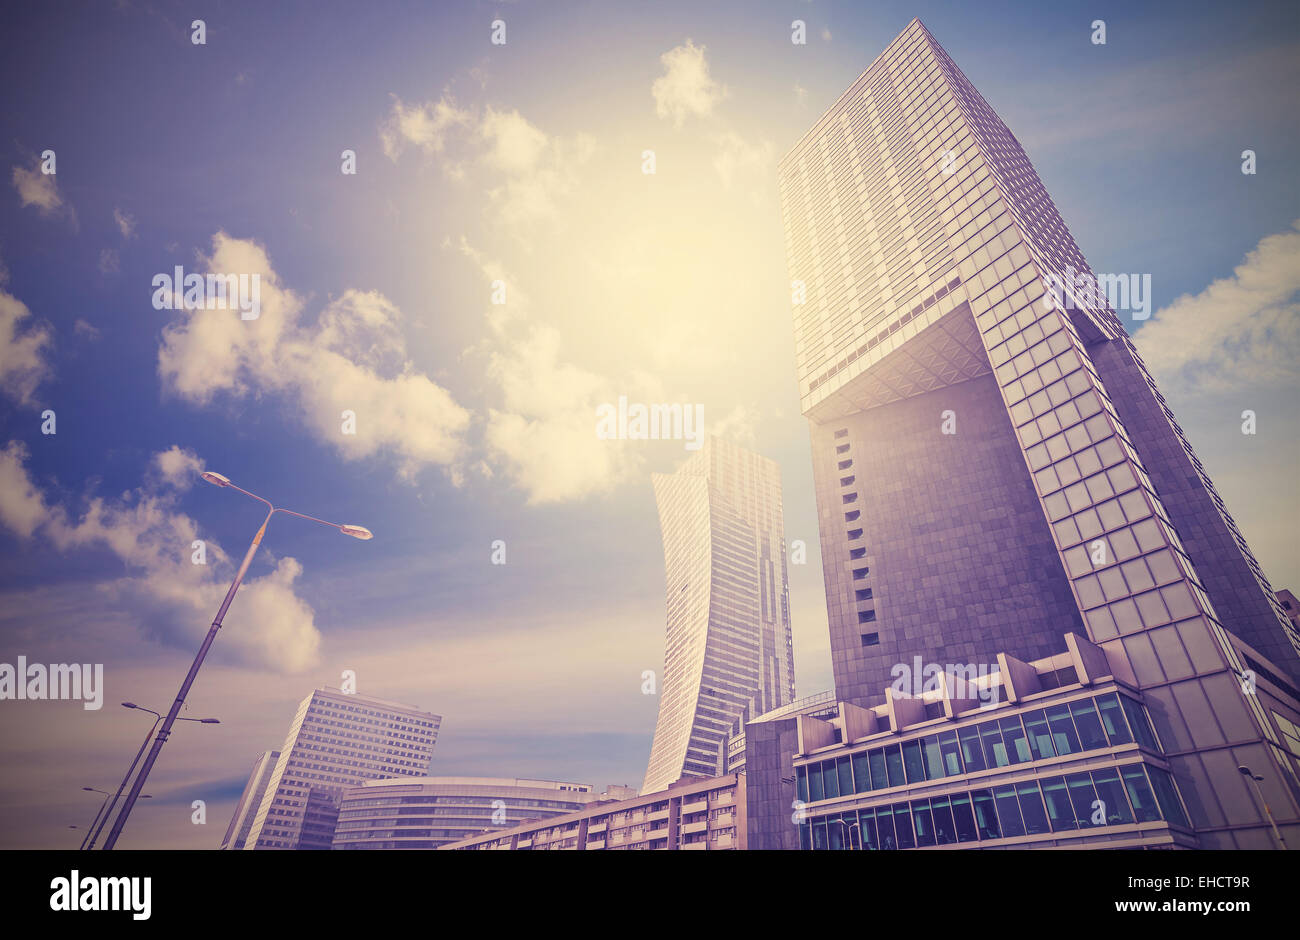 Urban landscape in retro style, Warsaw skyline, Poland. - Stock Image